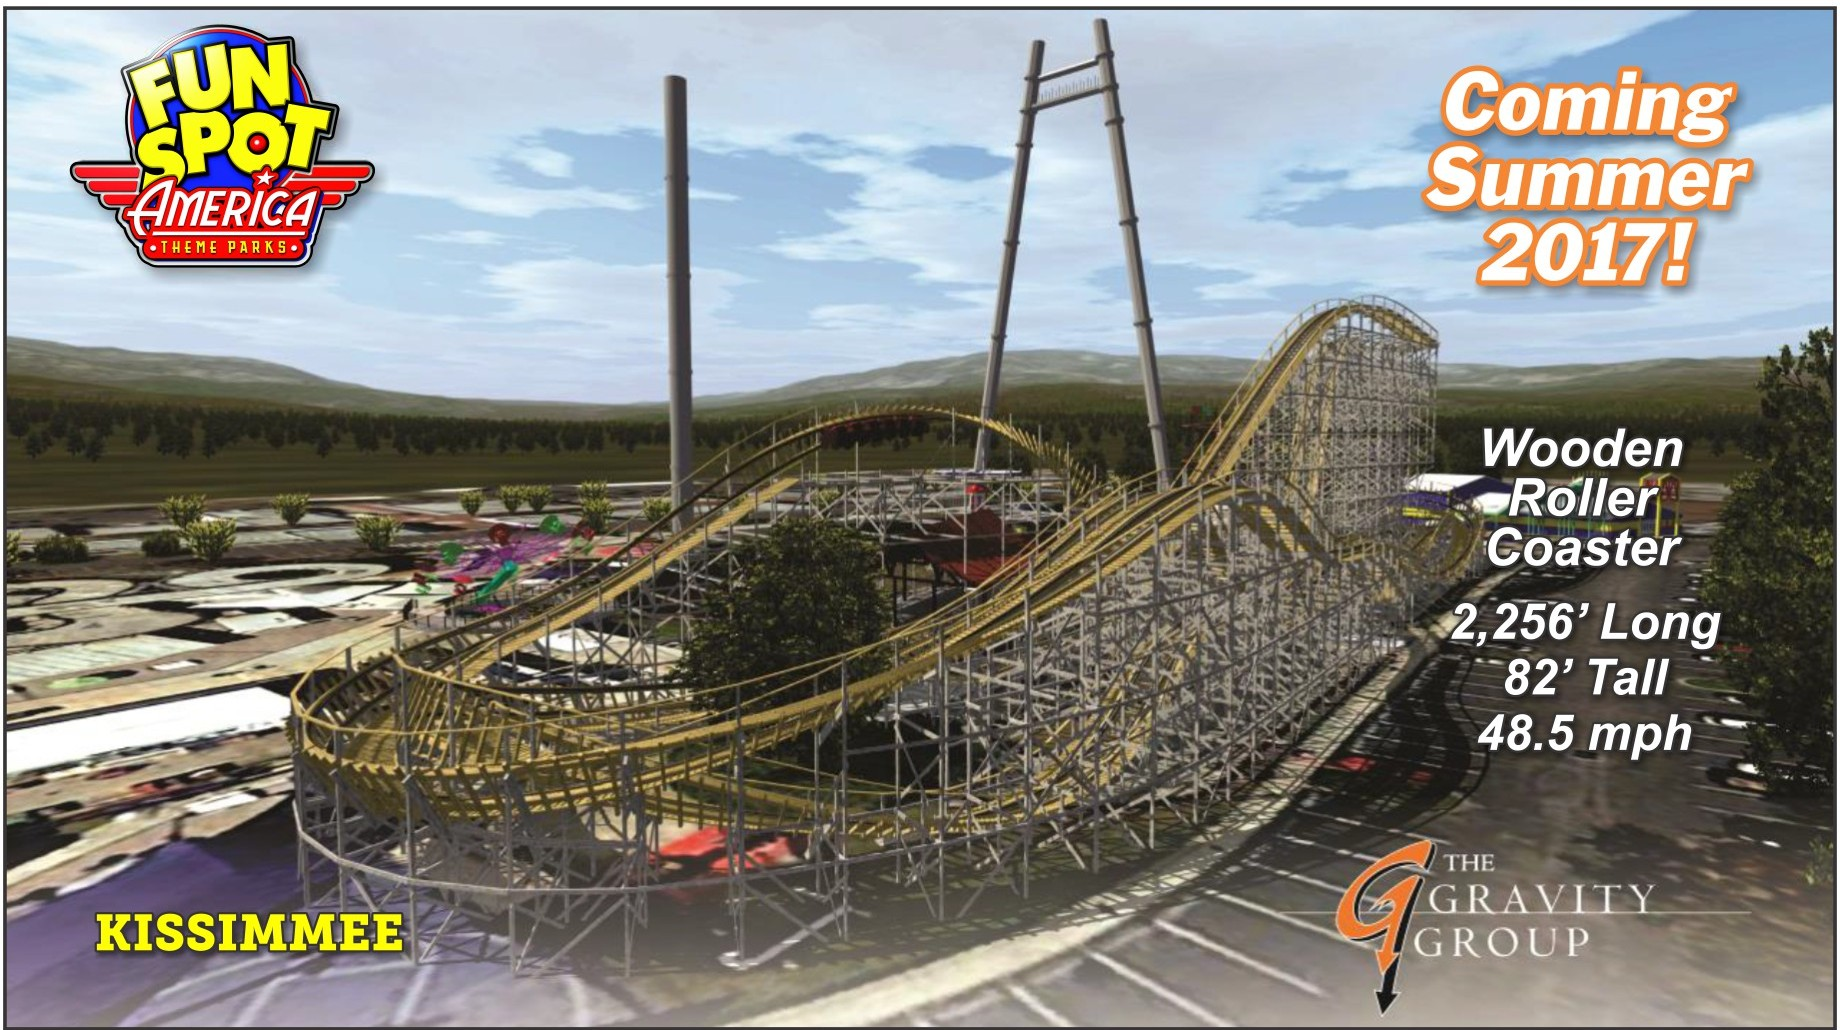 Fun Spot America Adding New Wooden Roller Coaster For Summer 2017 ...